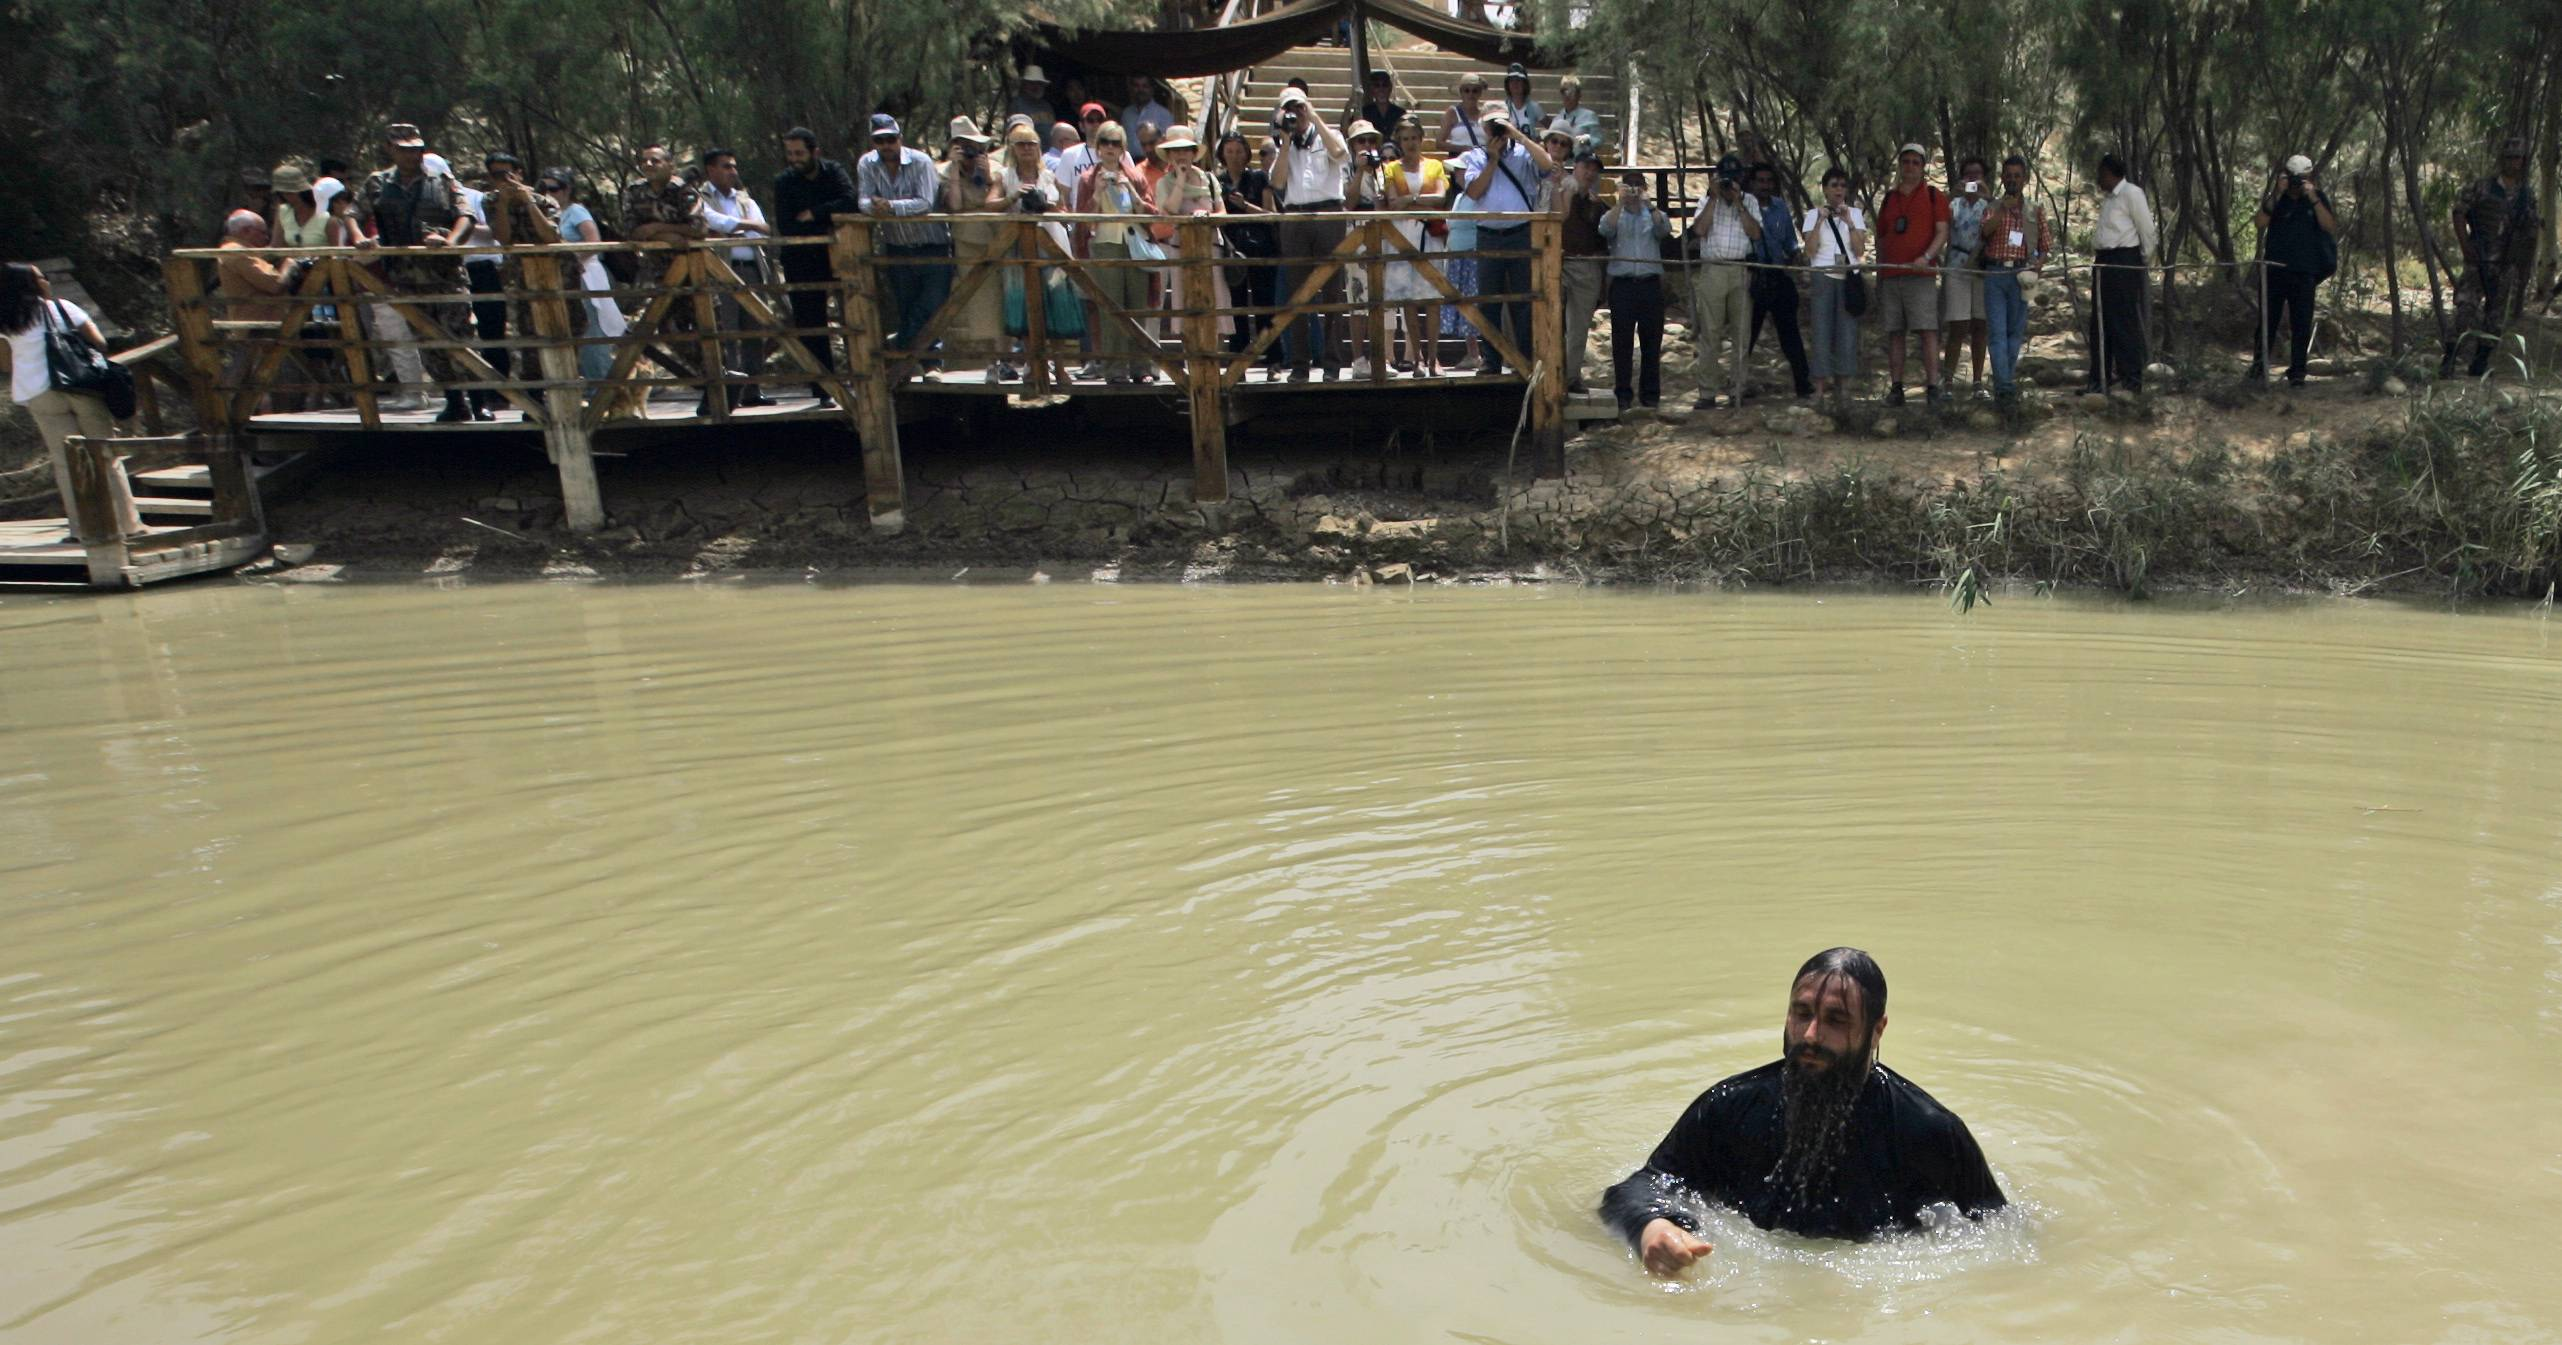 A Greek Orthodox priest bathes in the Jordan River after it was blessed during a baptism ceremony at Qasr-el Yahud near Jericho, in the West Bank.